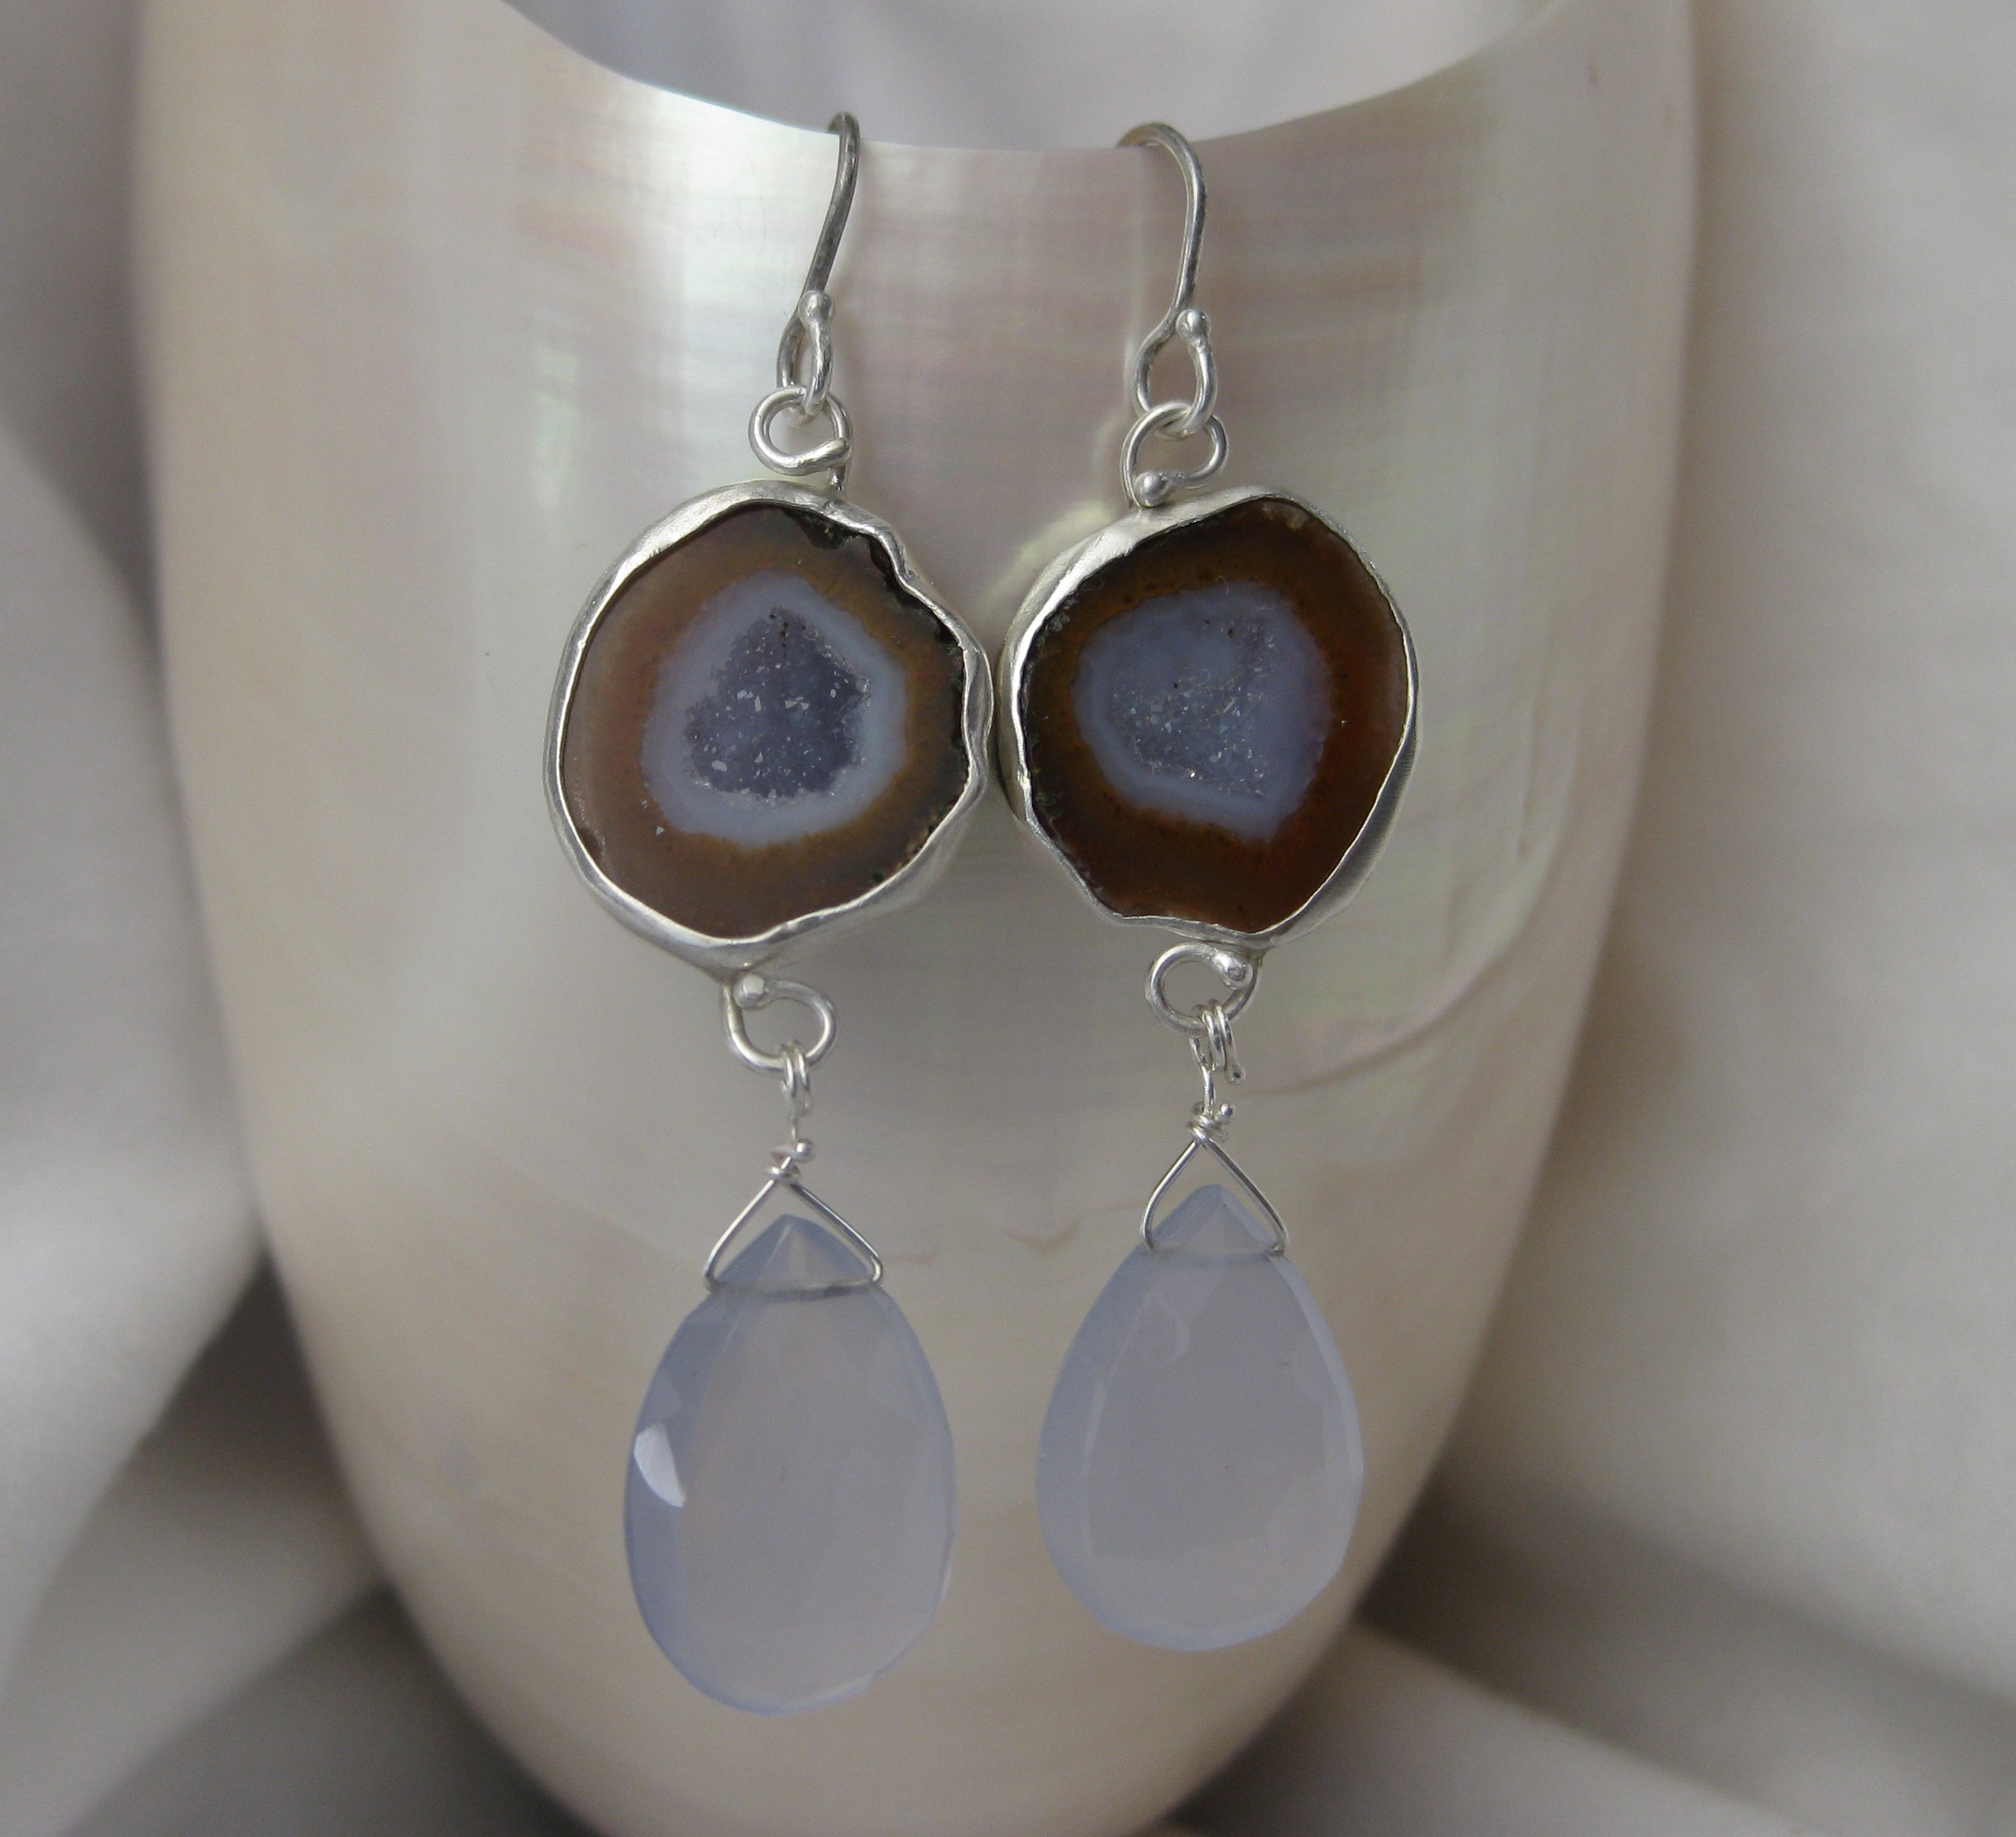 Baby Geode Earrings with Lavender Chalcedony Drops